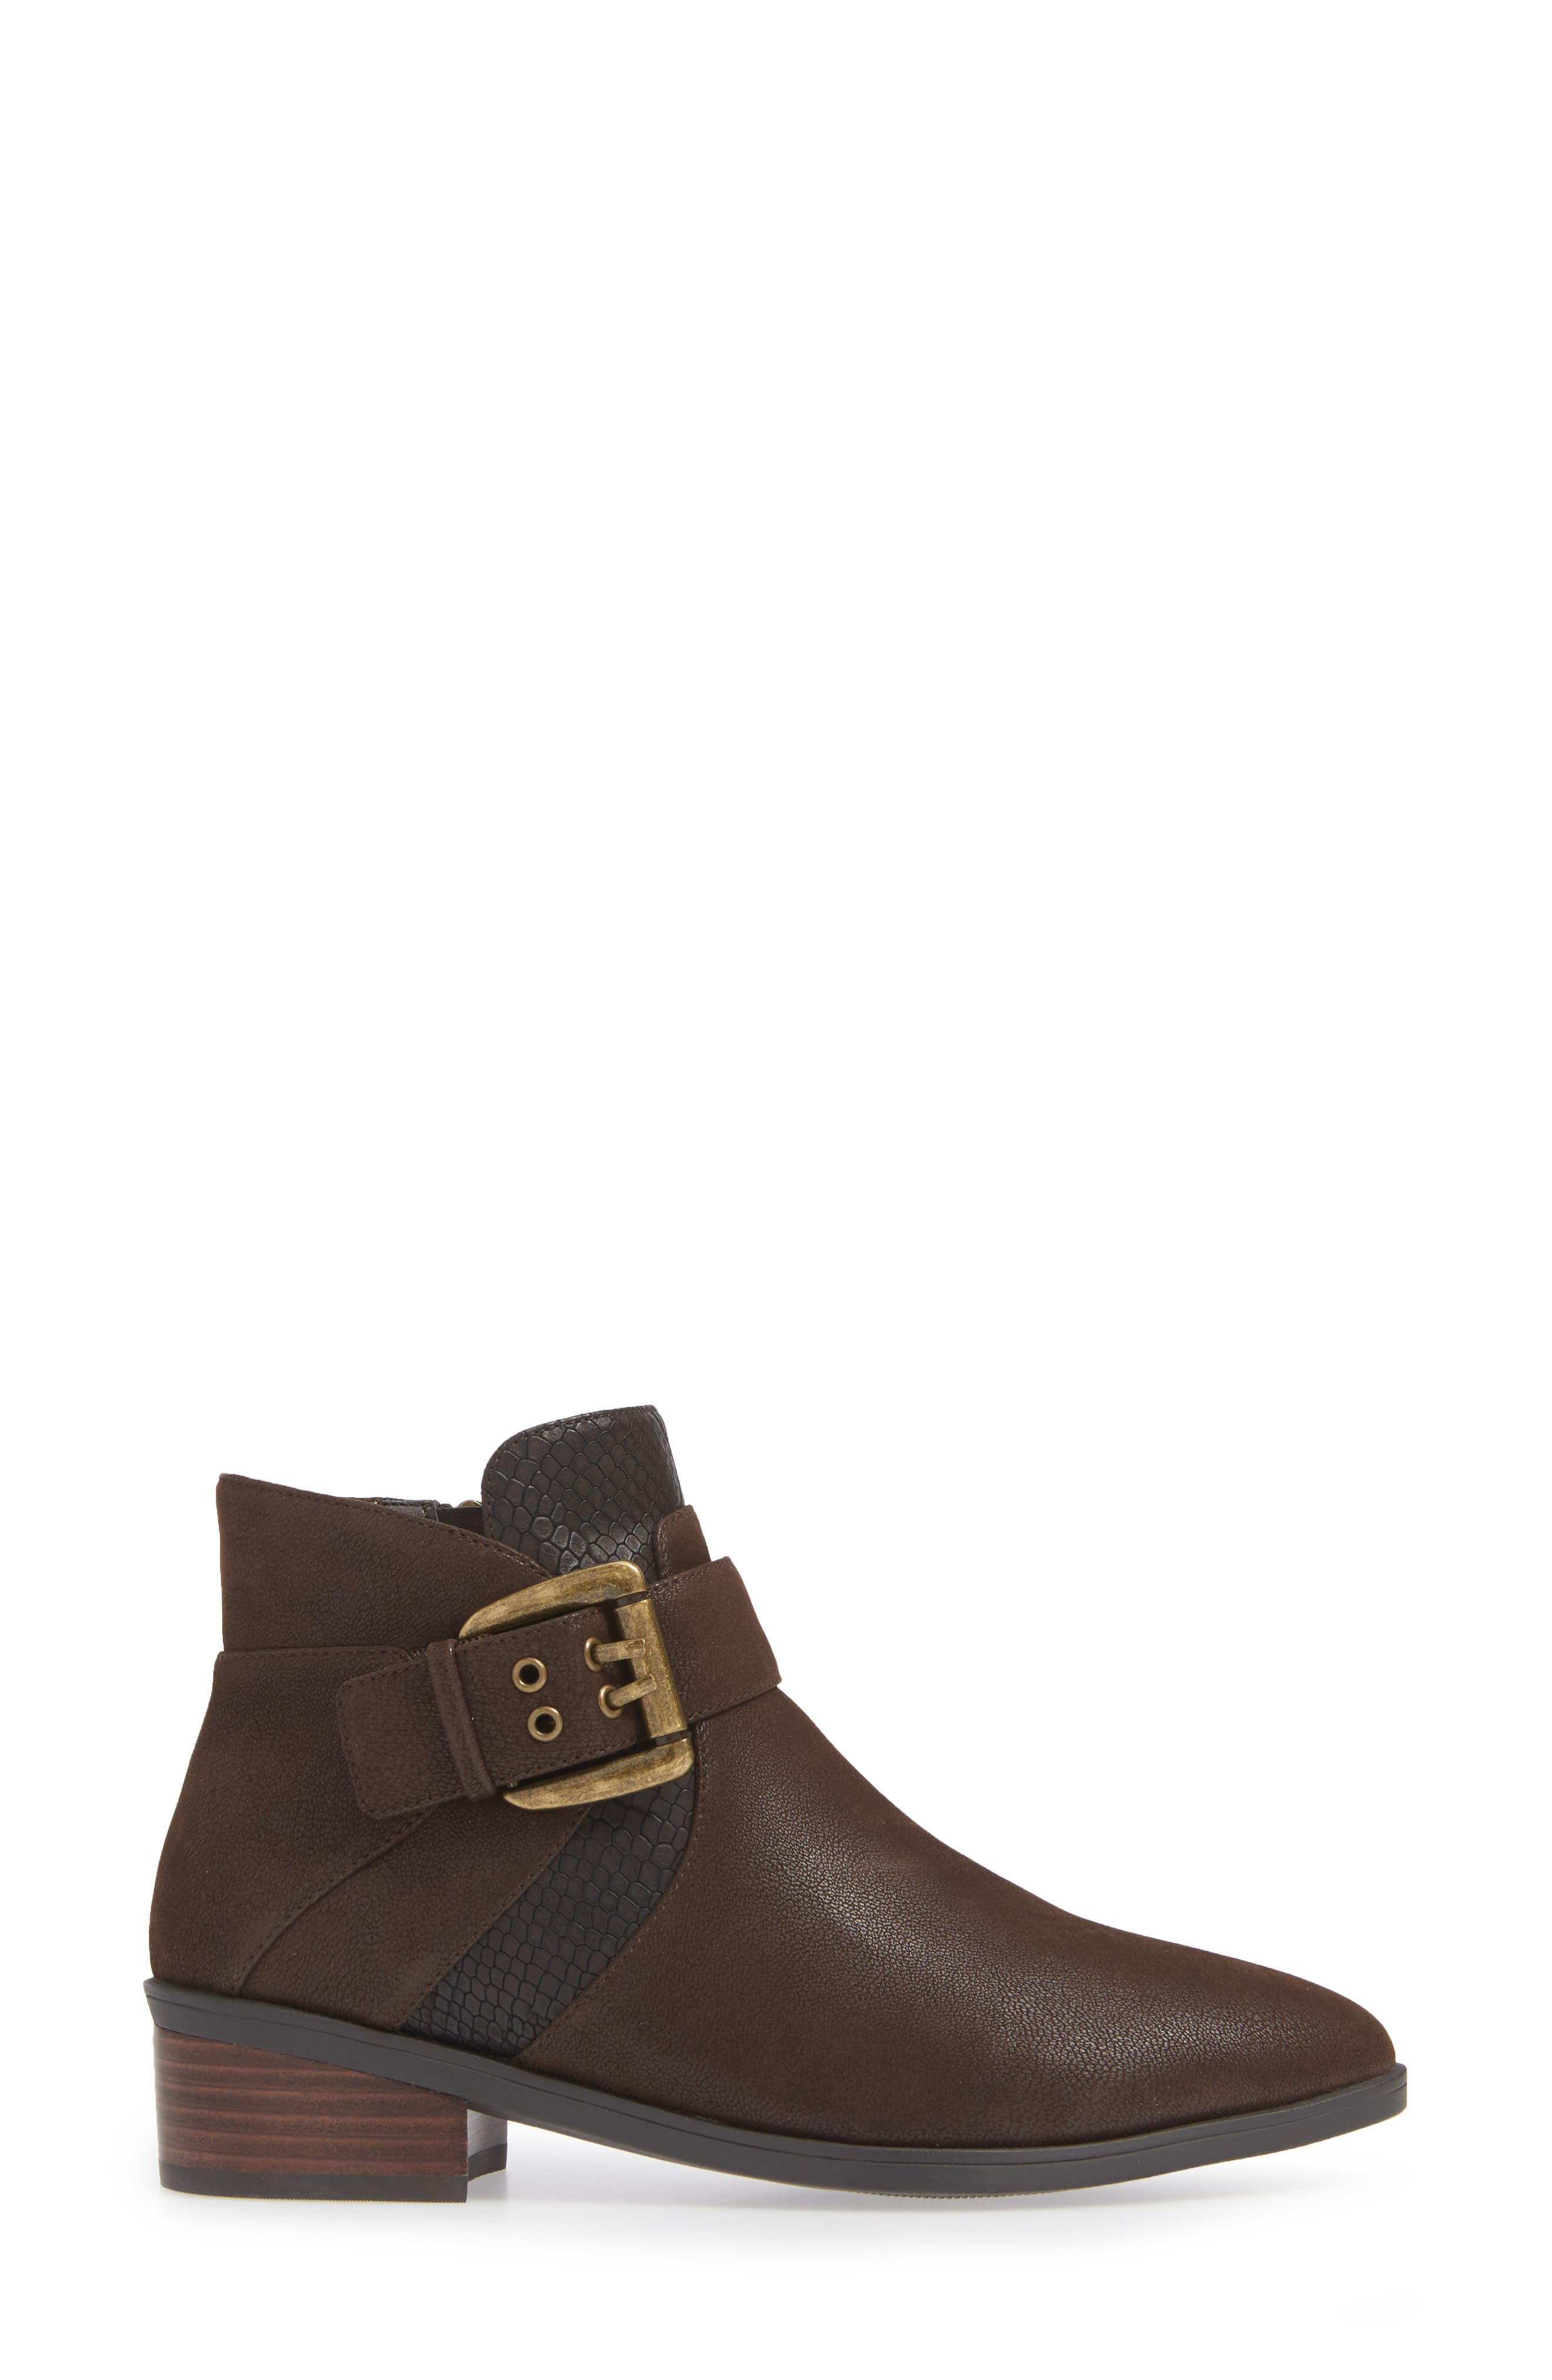 Honor II Bootie,                             Alternate thumbnail 3, color,                             BROWN LEATHER